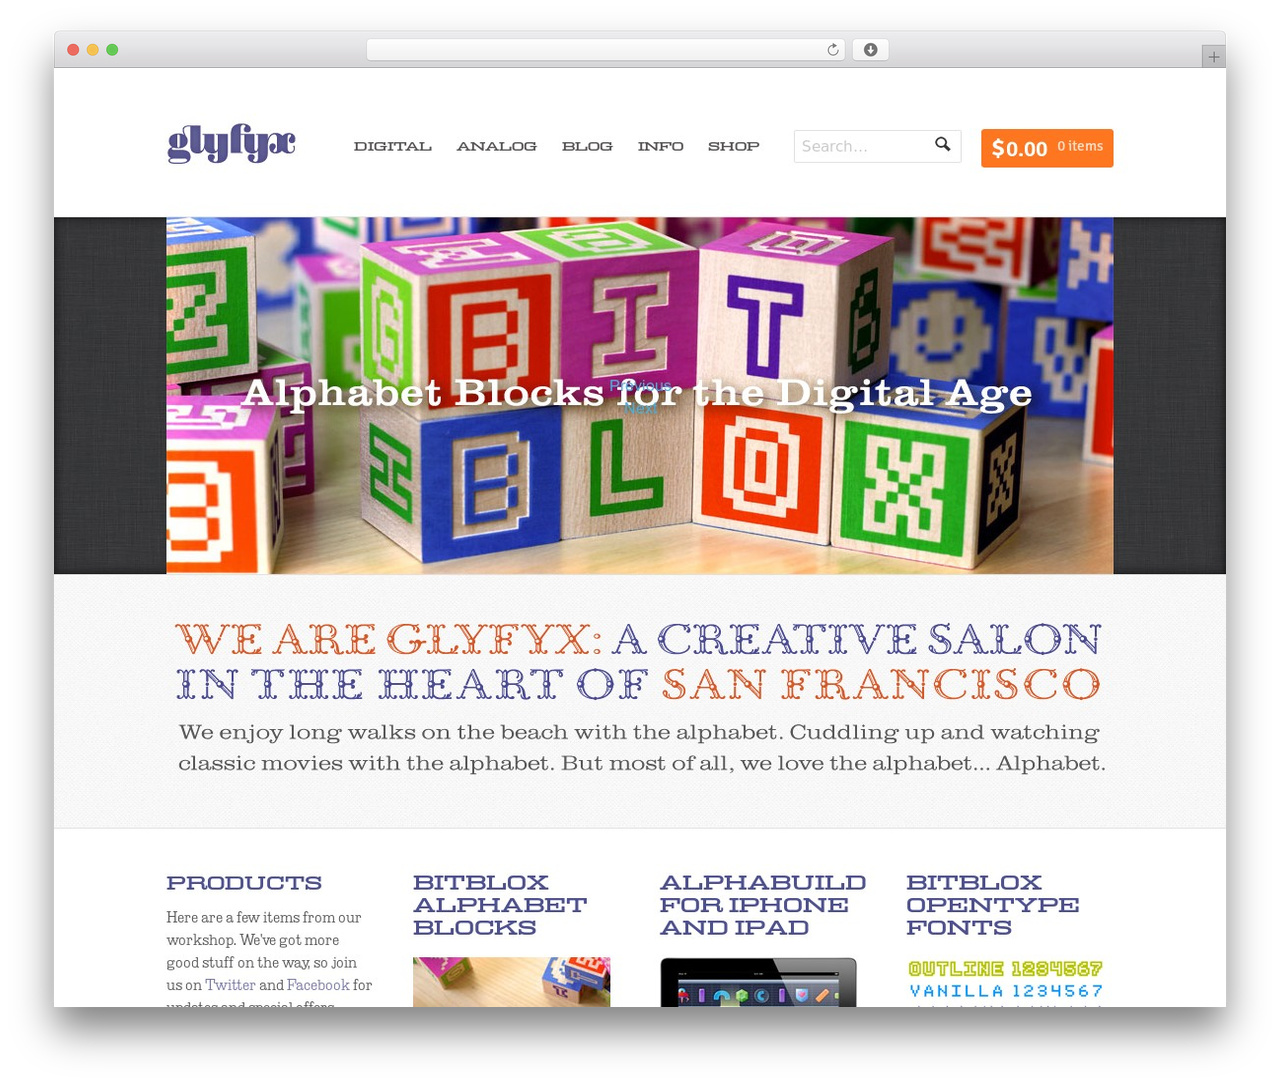 Whitelight template WordPress - glyfyx.com